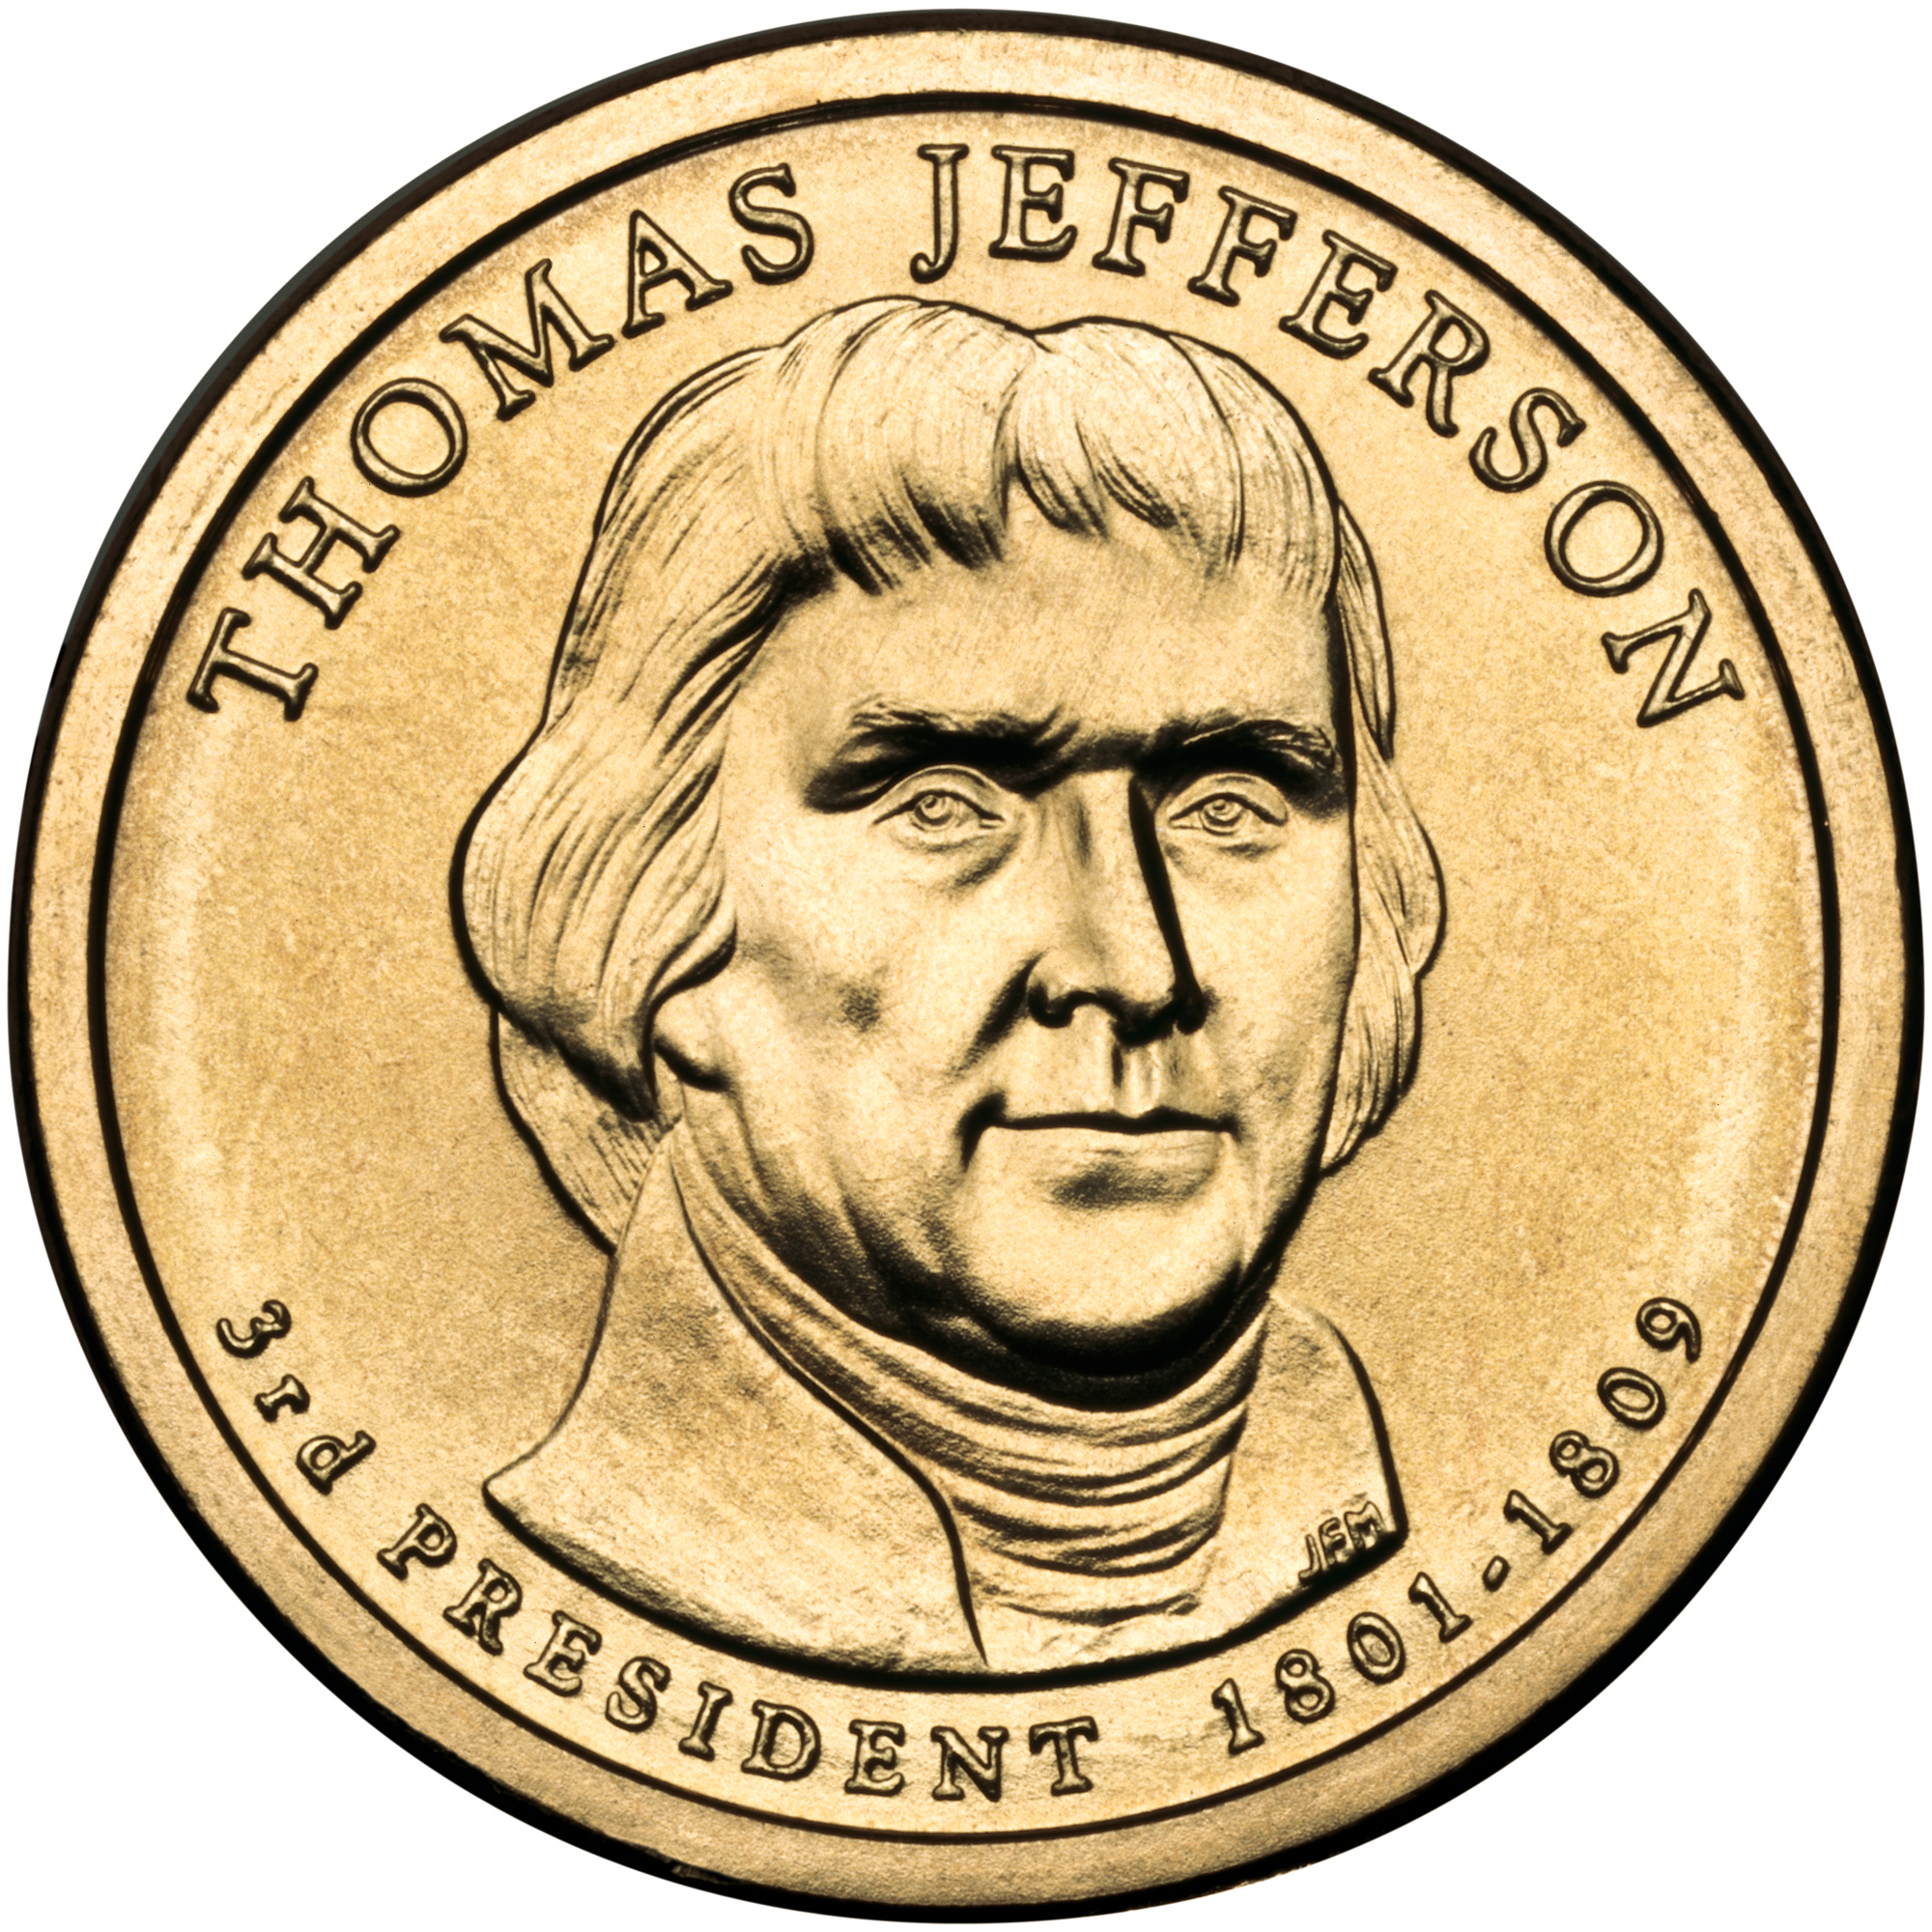 2007 Presidential Dollar Coin Thomas Jefferson Uncirculated Obverse